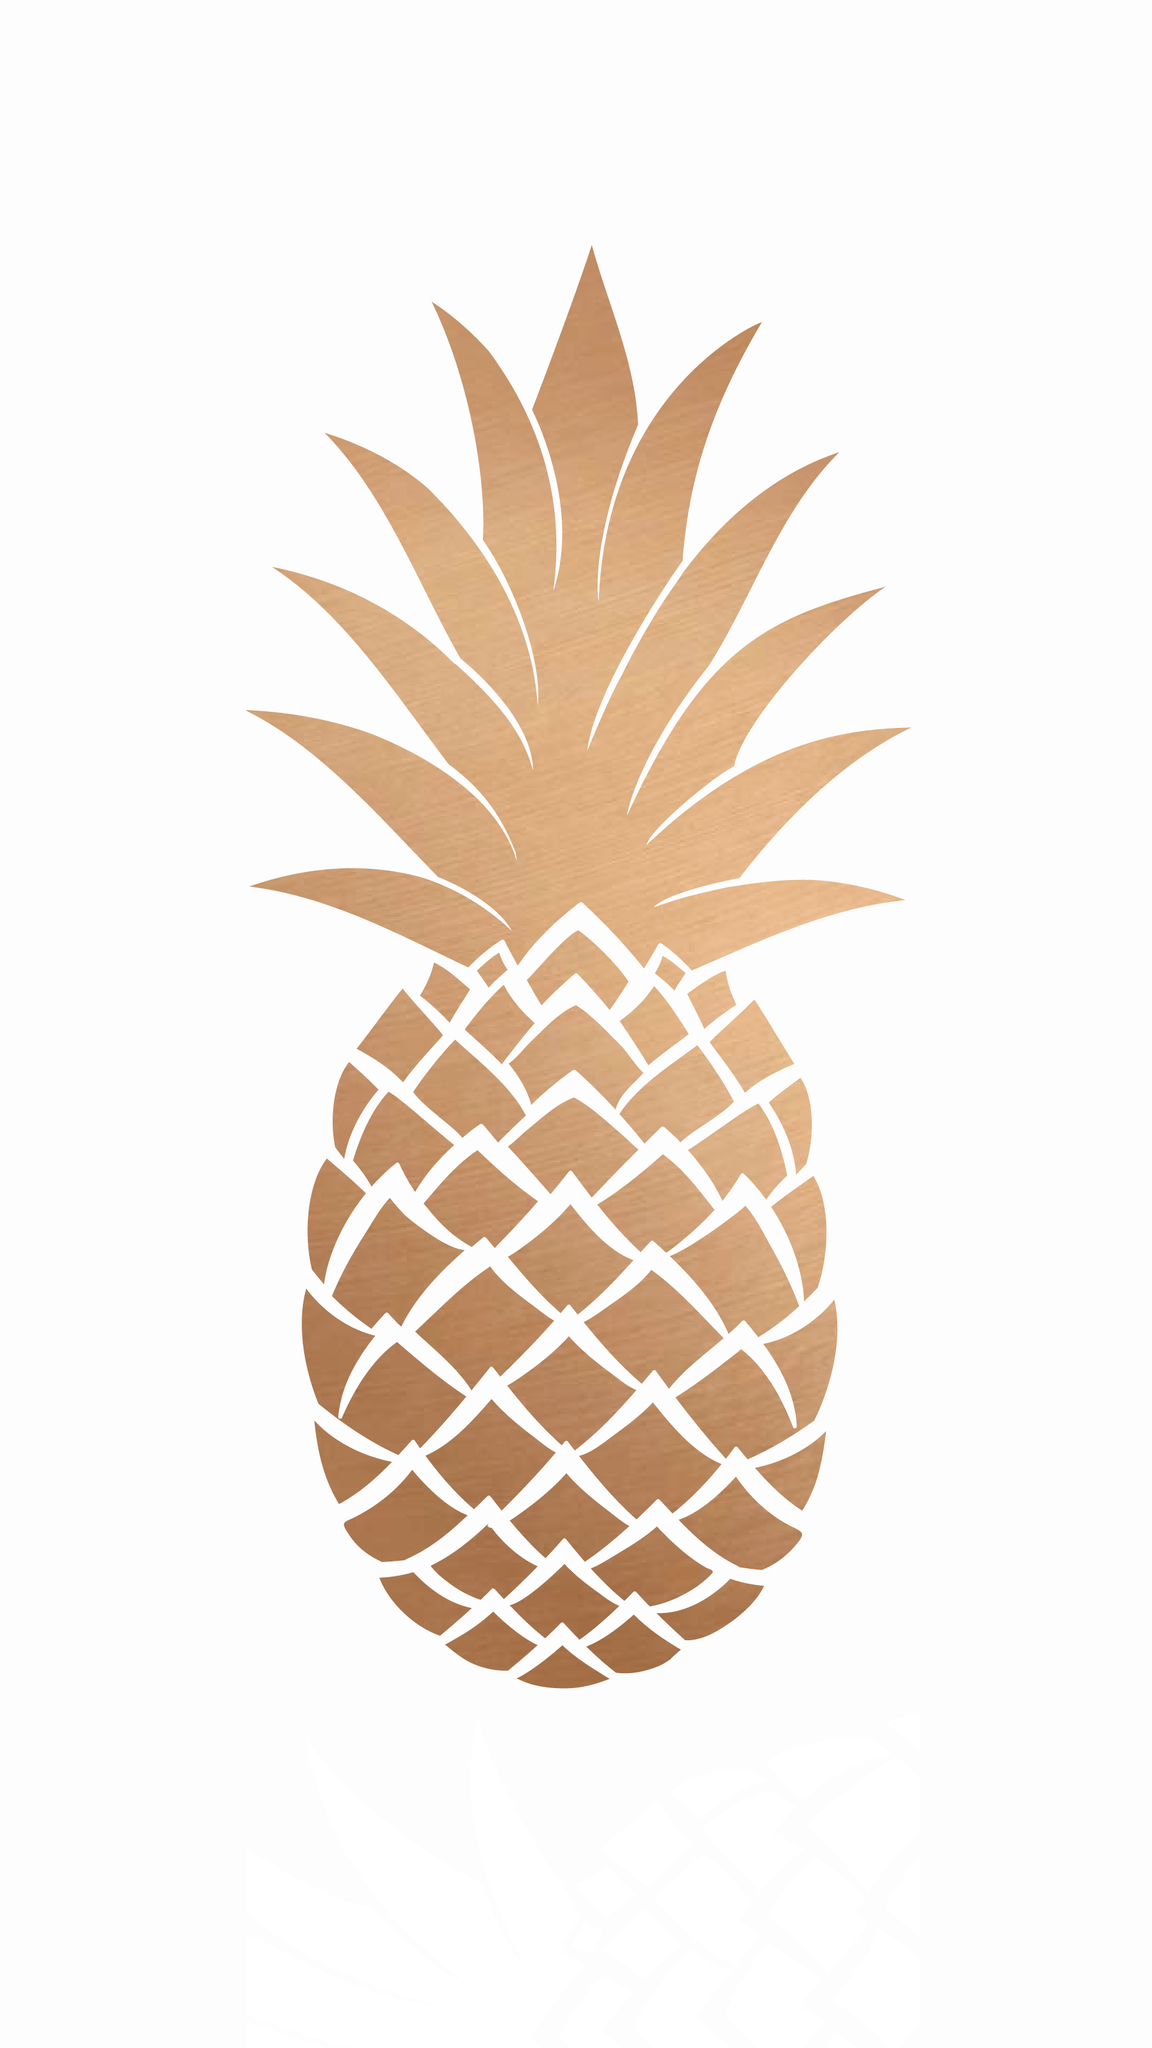 Amazing Wallpaper Macbook Pineapple - 519155bf03282feab970eef1d86fe37c  Perfect Image Reference_866551.png